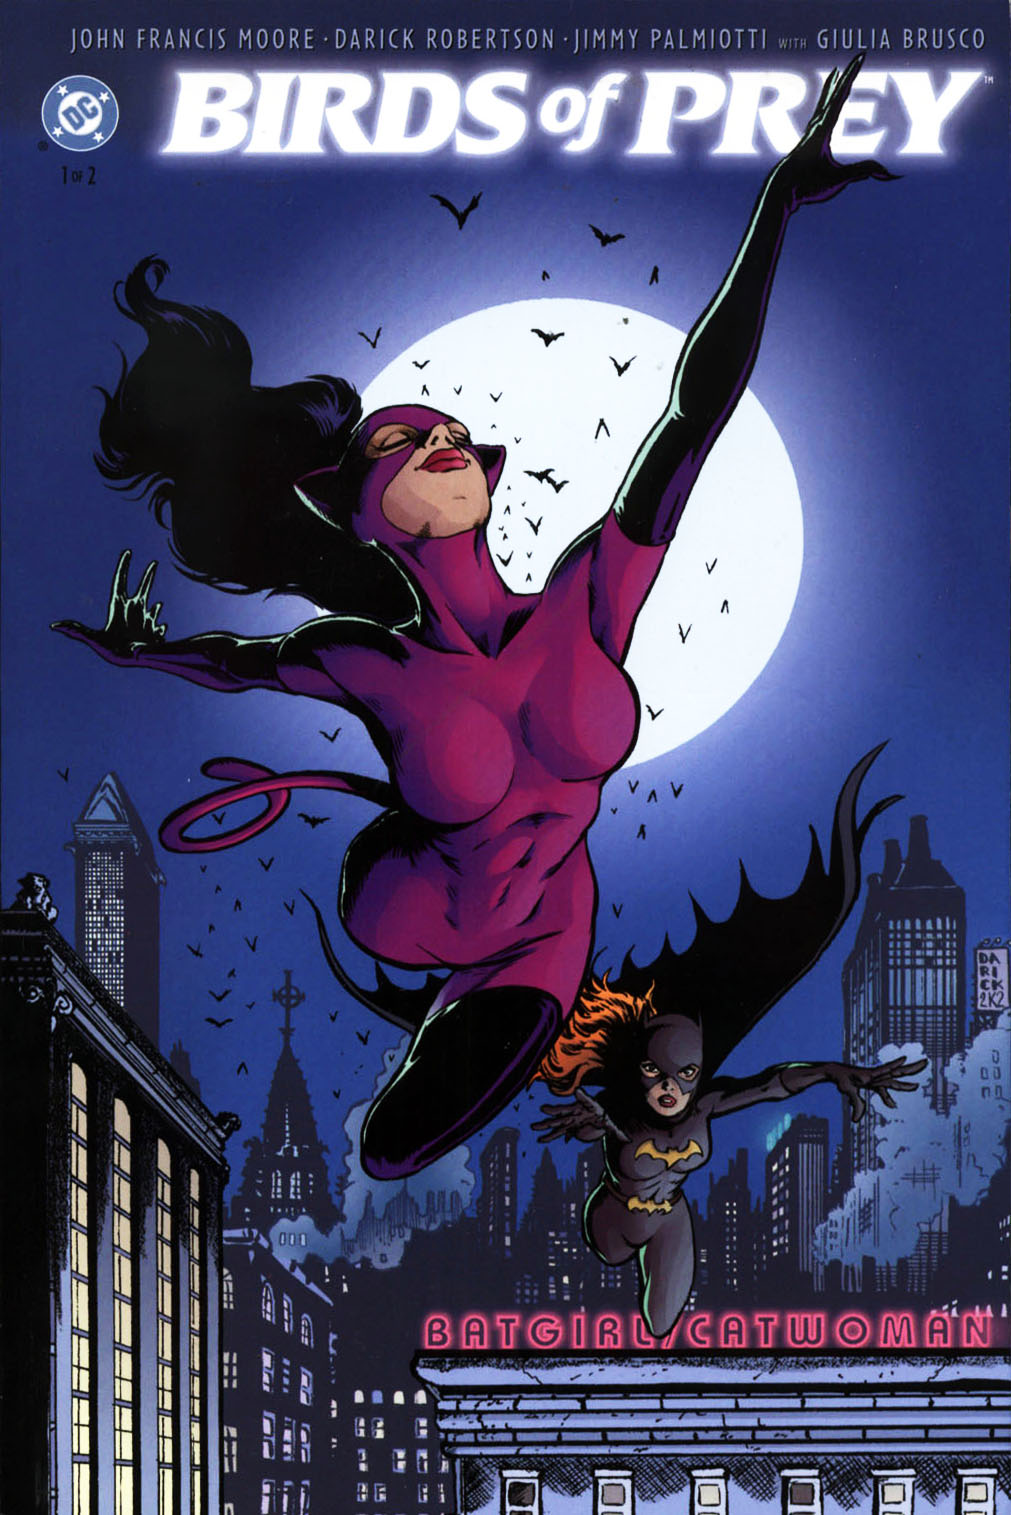 Birds Of Prey - Batgirl-Catwoman 1-00fc.jpg